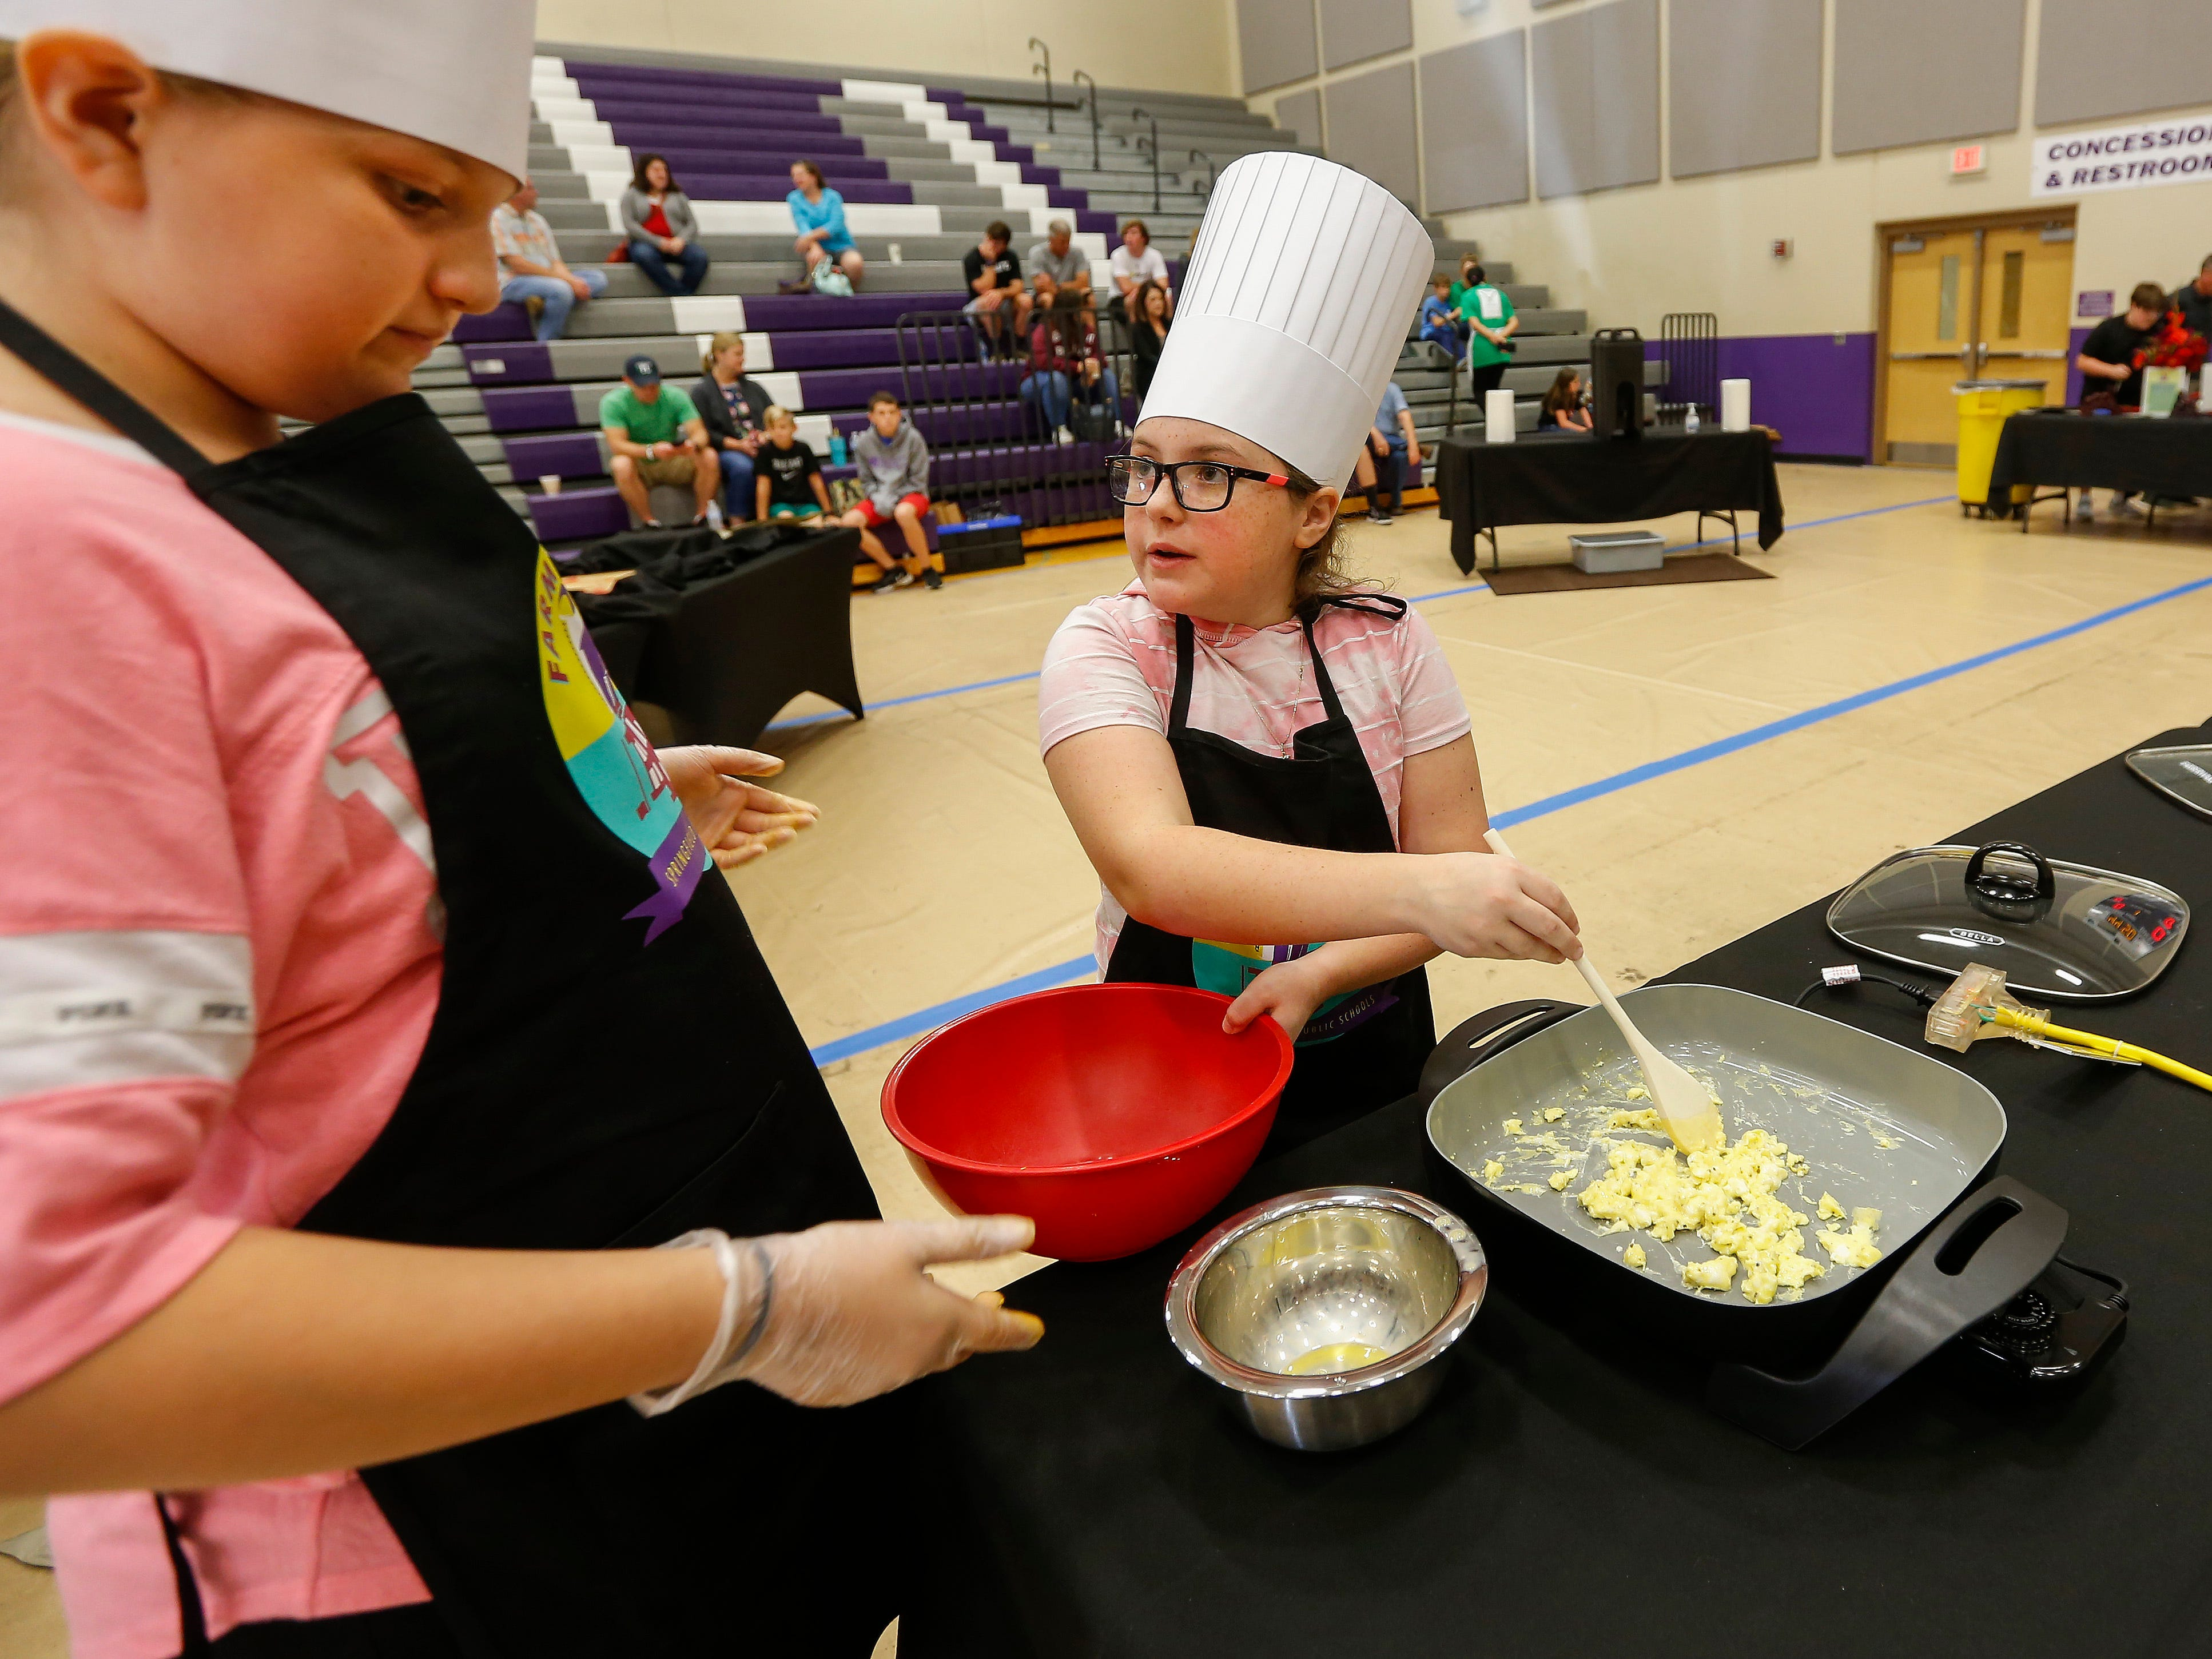 Bryn Eacret, right, takes a bowl from her teammate Addyson Stormzand while scrambling eggs during the third annual Junior Chef Competition at Hickory Hills Middle School on Saturday, Sept. 29, 2018.